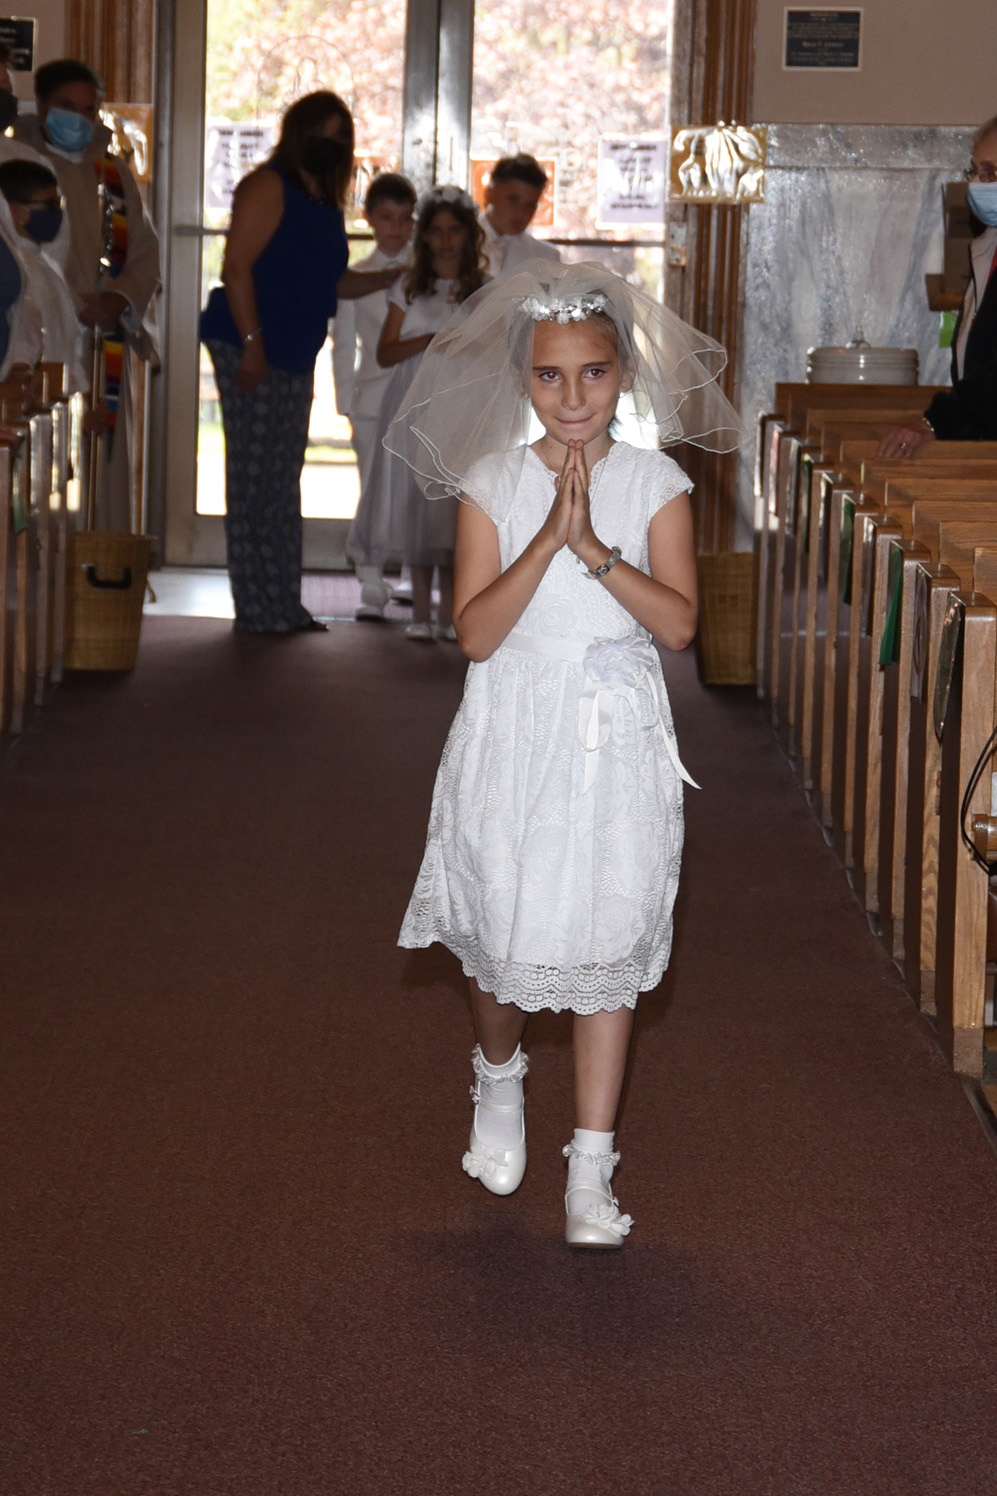 FIRST-COMMUNION-MAY-15-2021-10011055